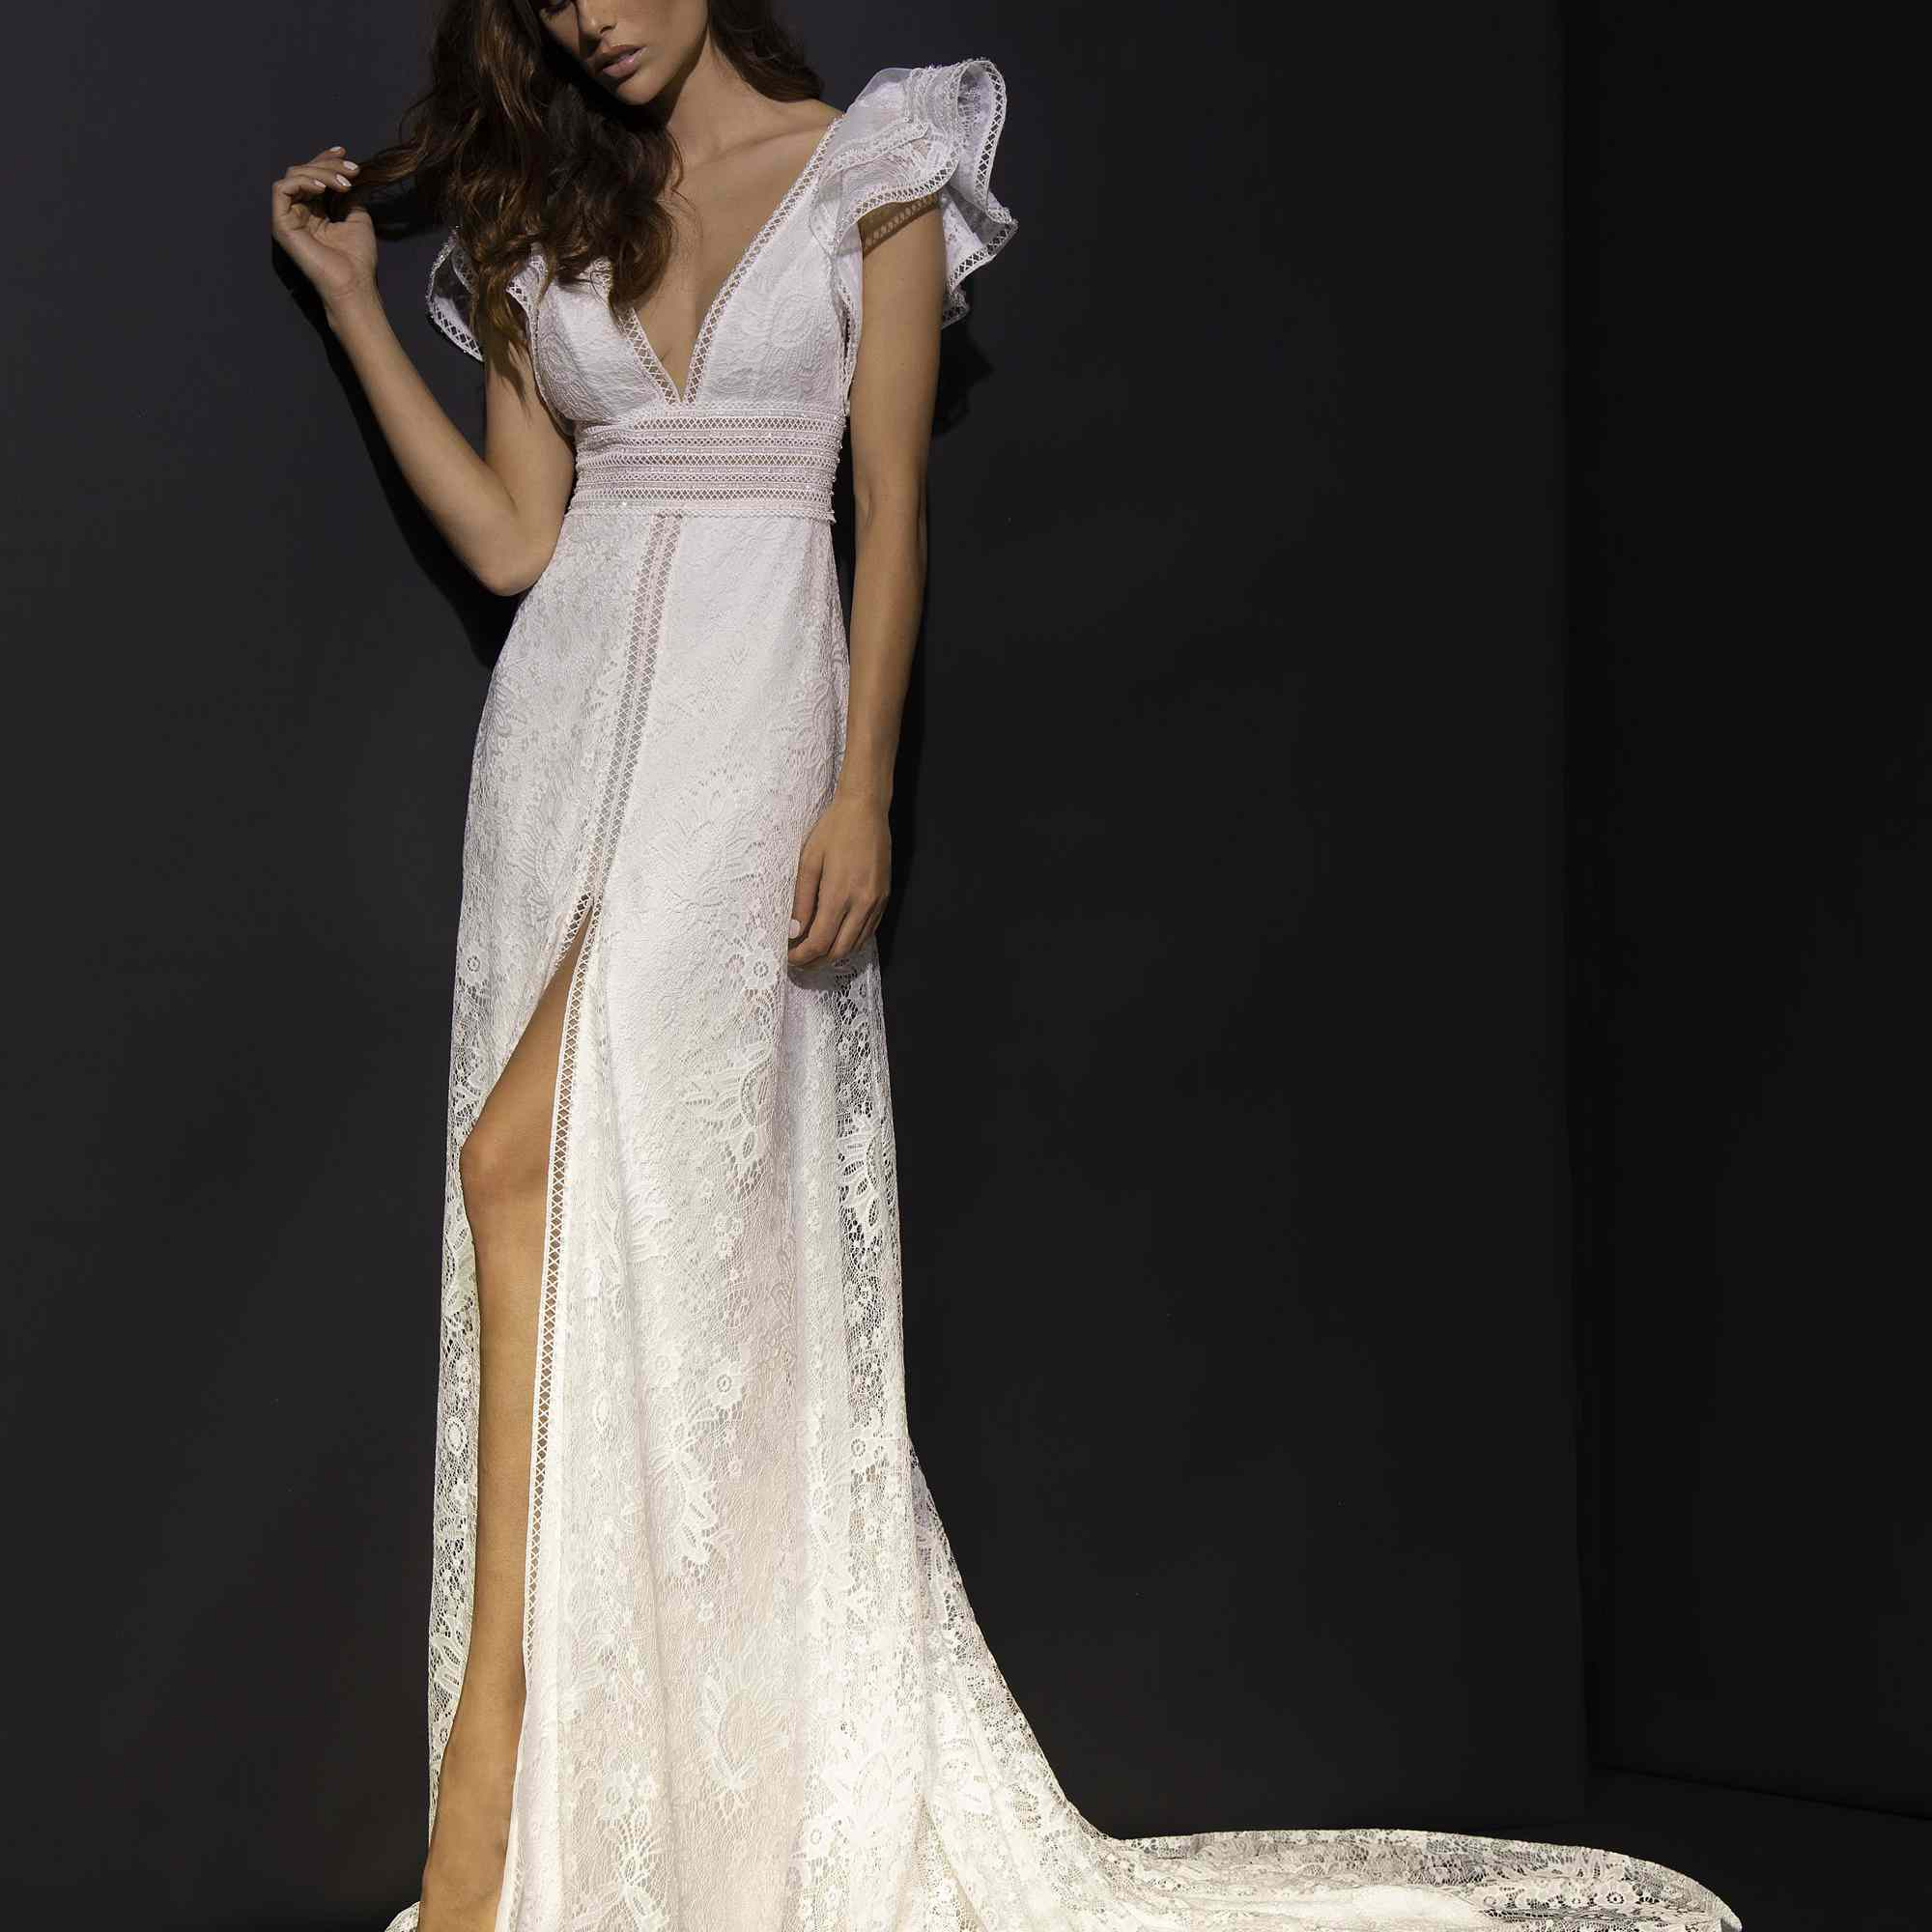 Model in V-neck gown with high skirt slit and butterfly sleeves